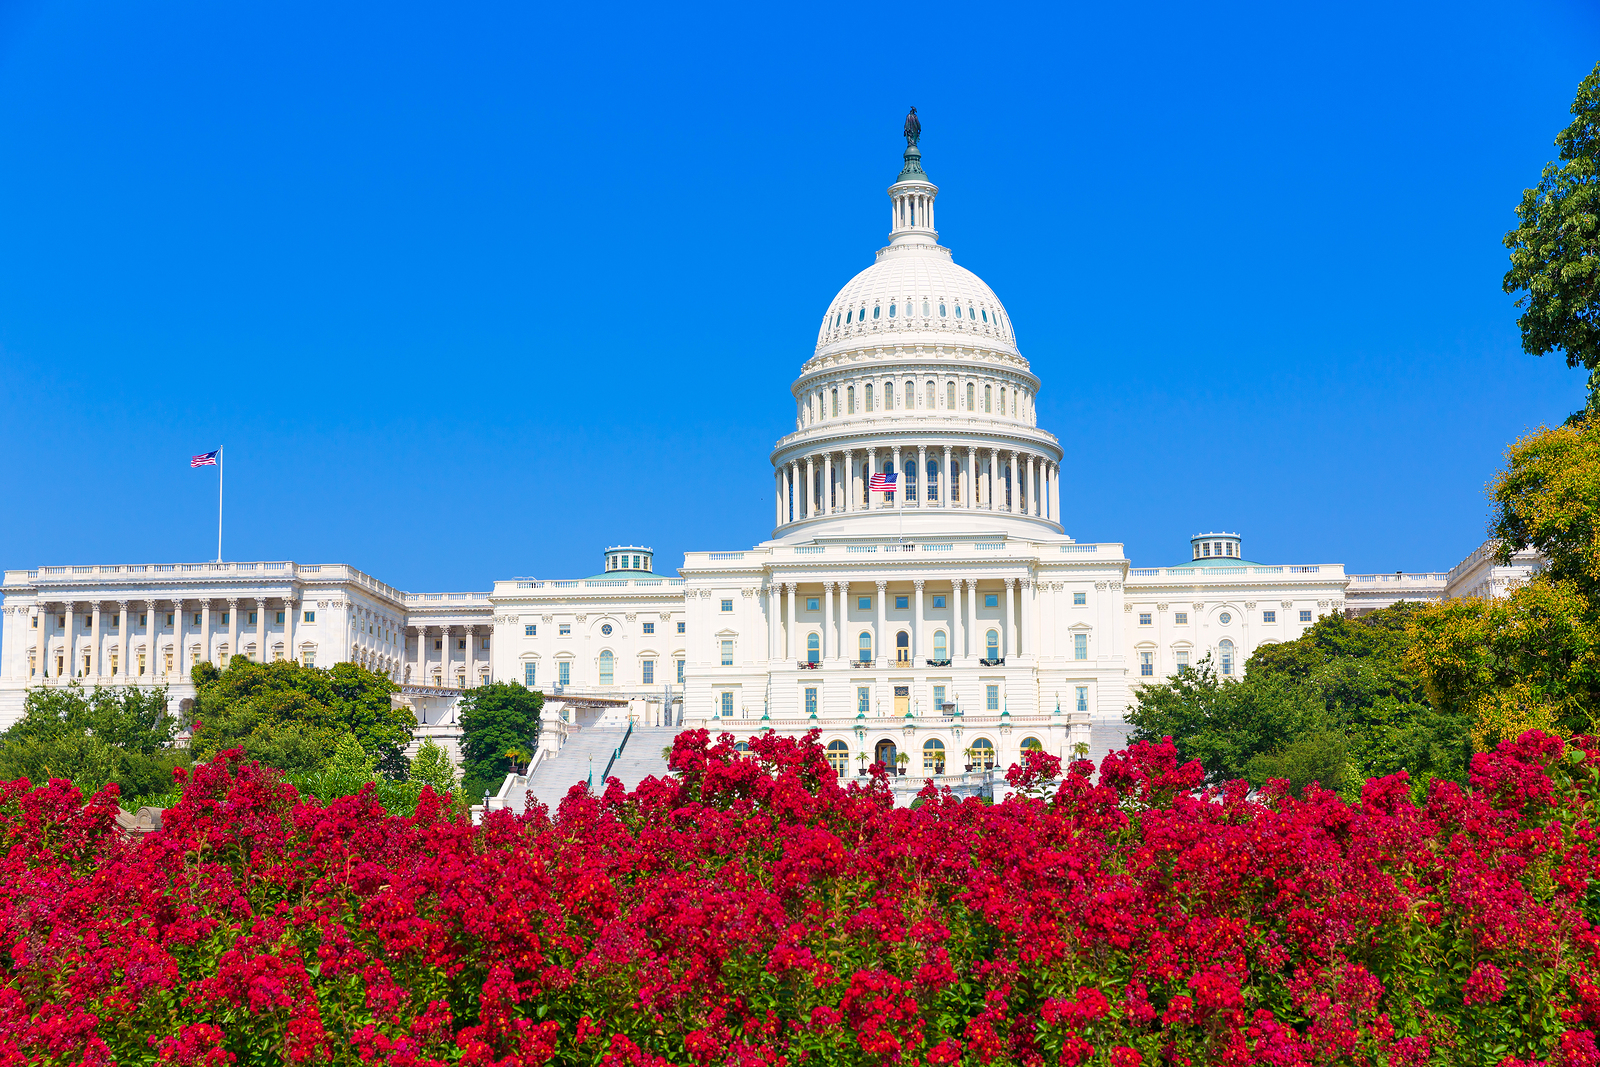 Capitol building Washington DC pink flowers garden USA congress US